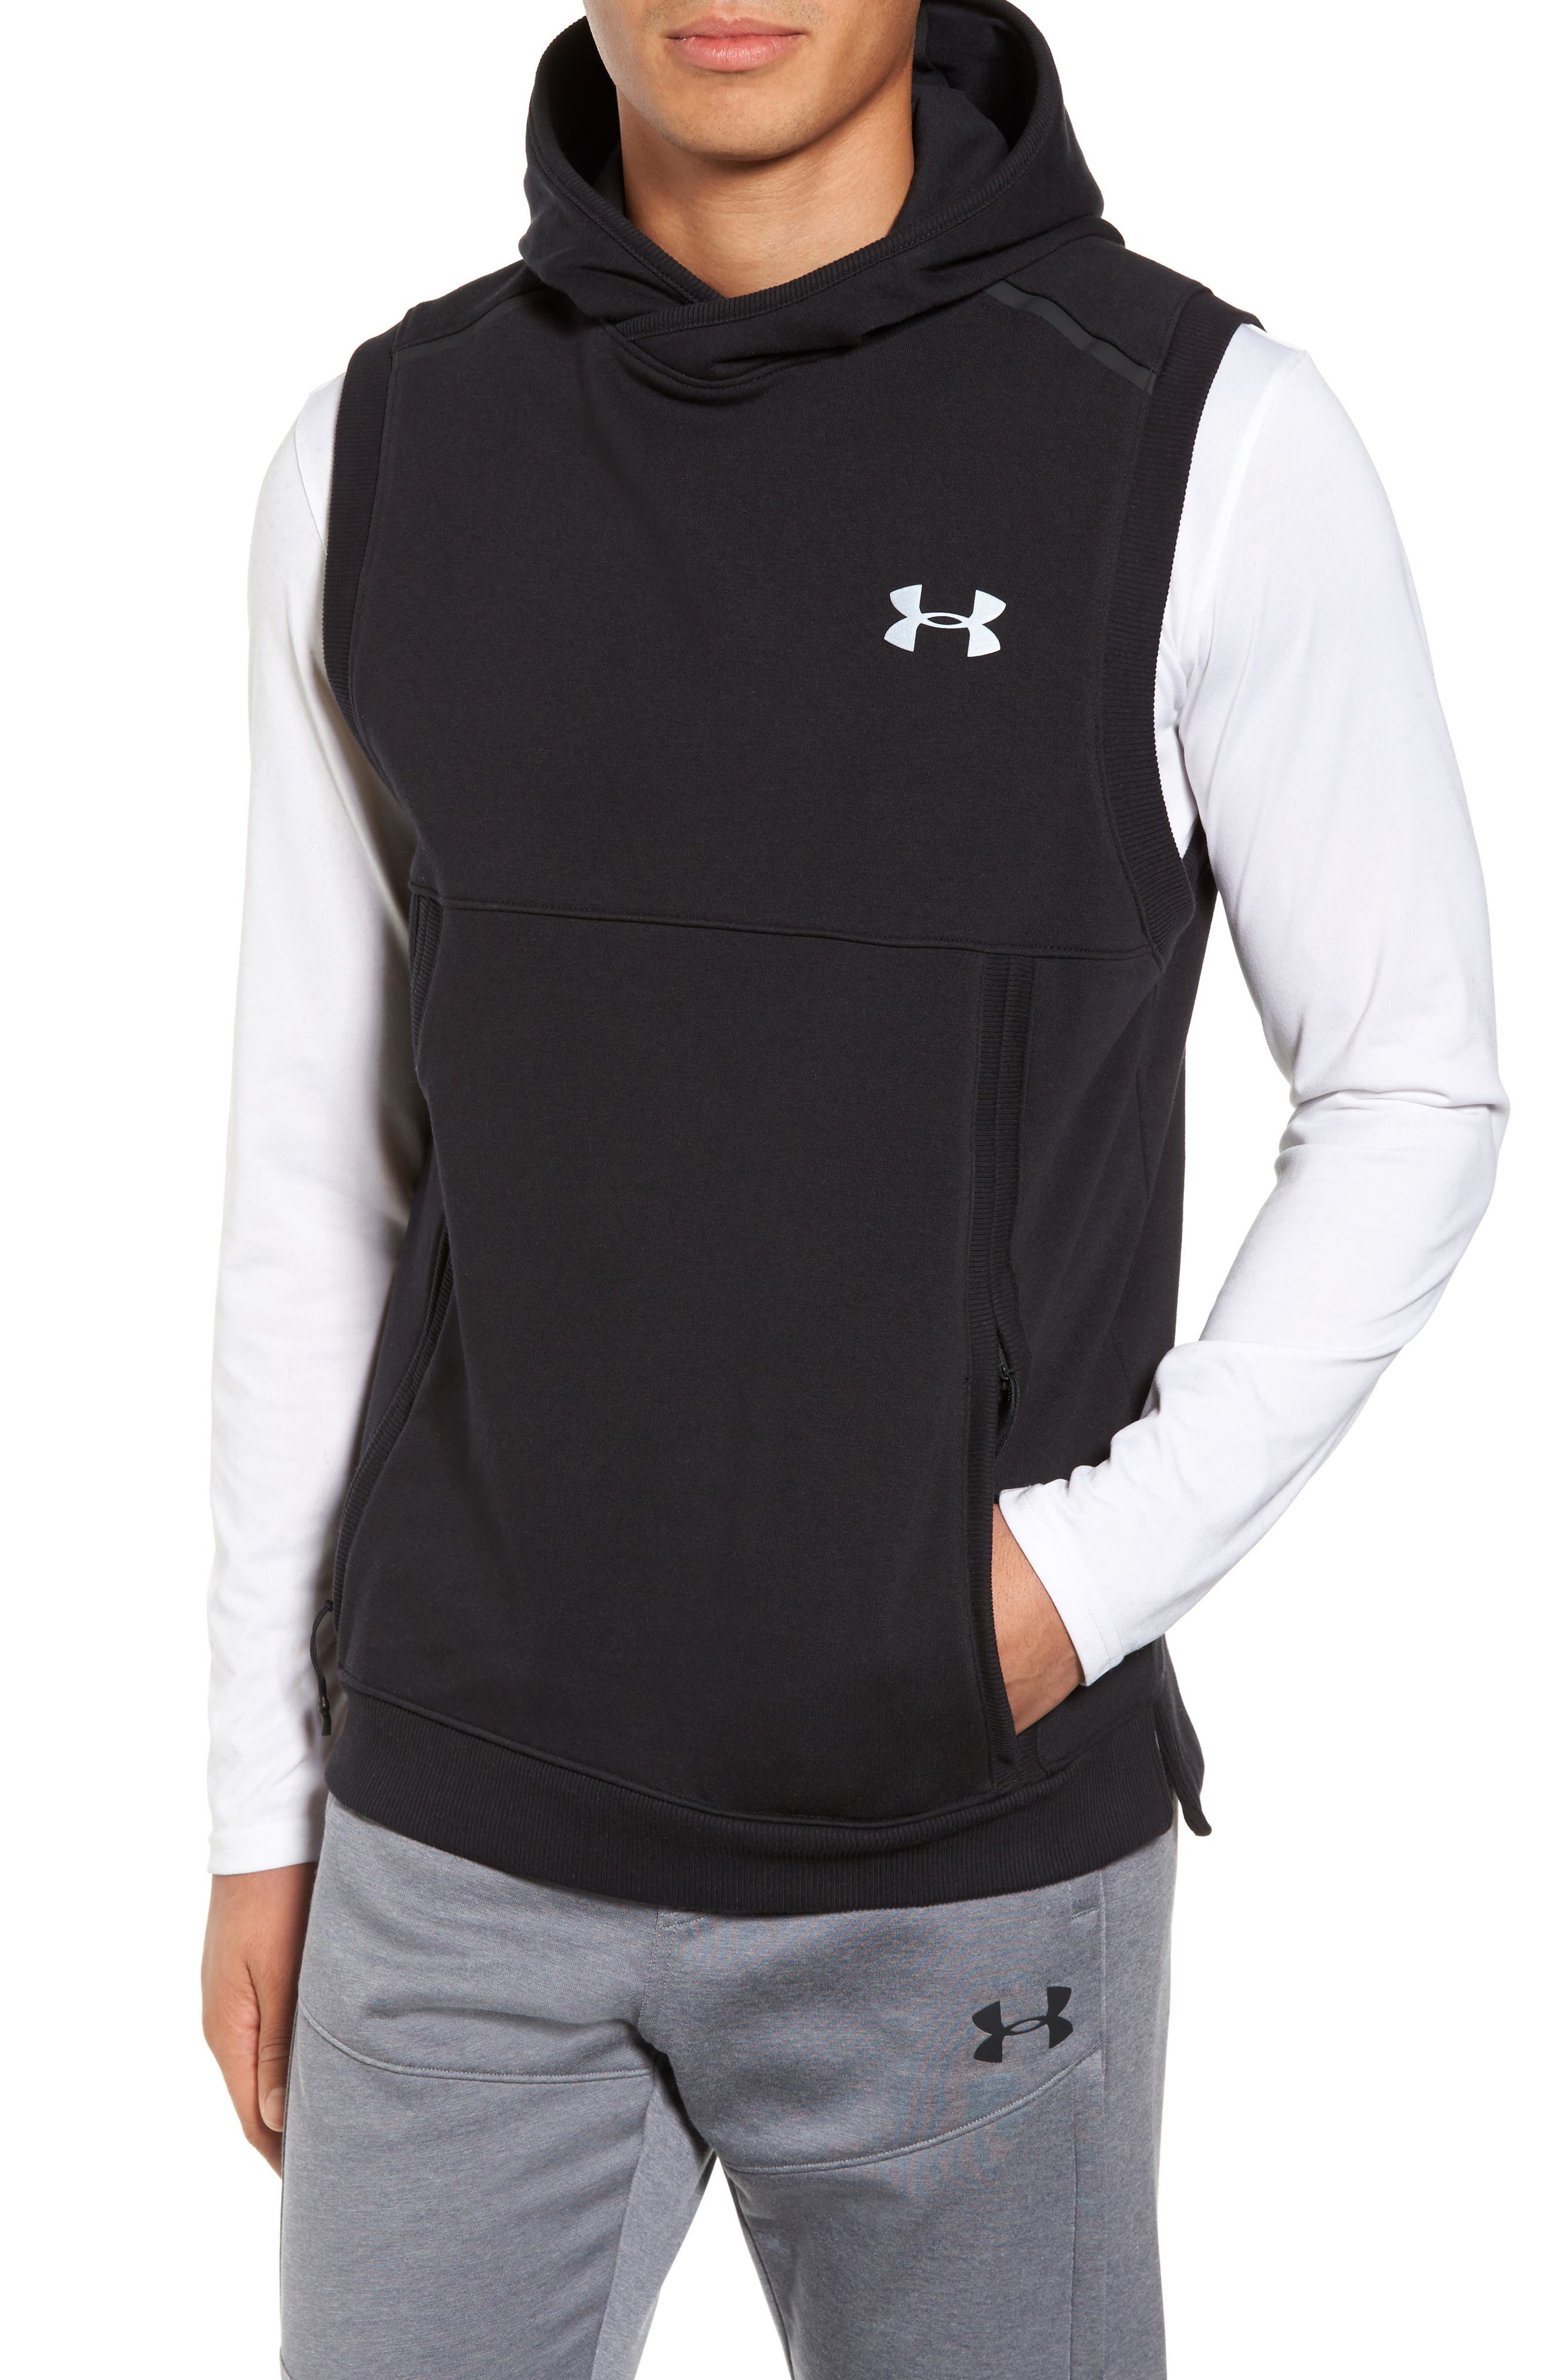 Threadborne Hooded Vest,                             Main thumbnail 1, color,                             001